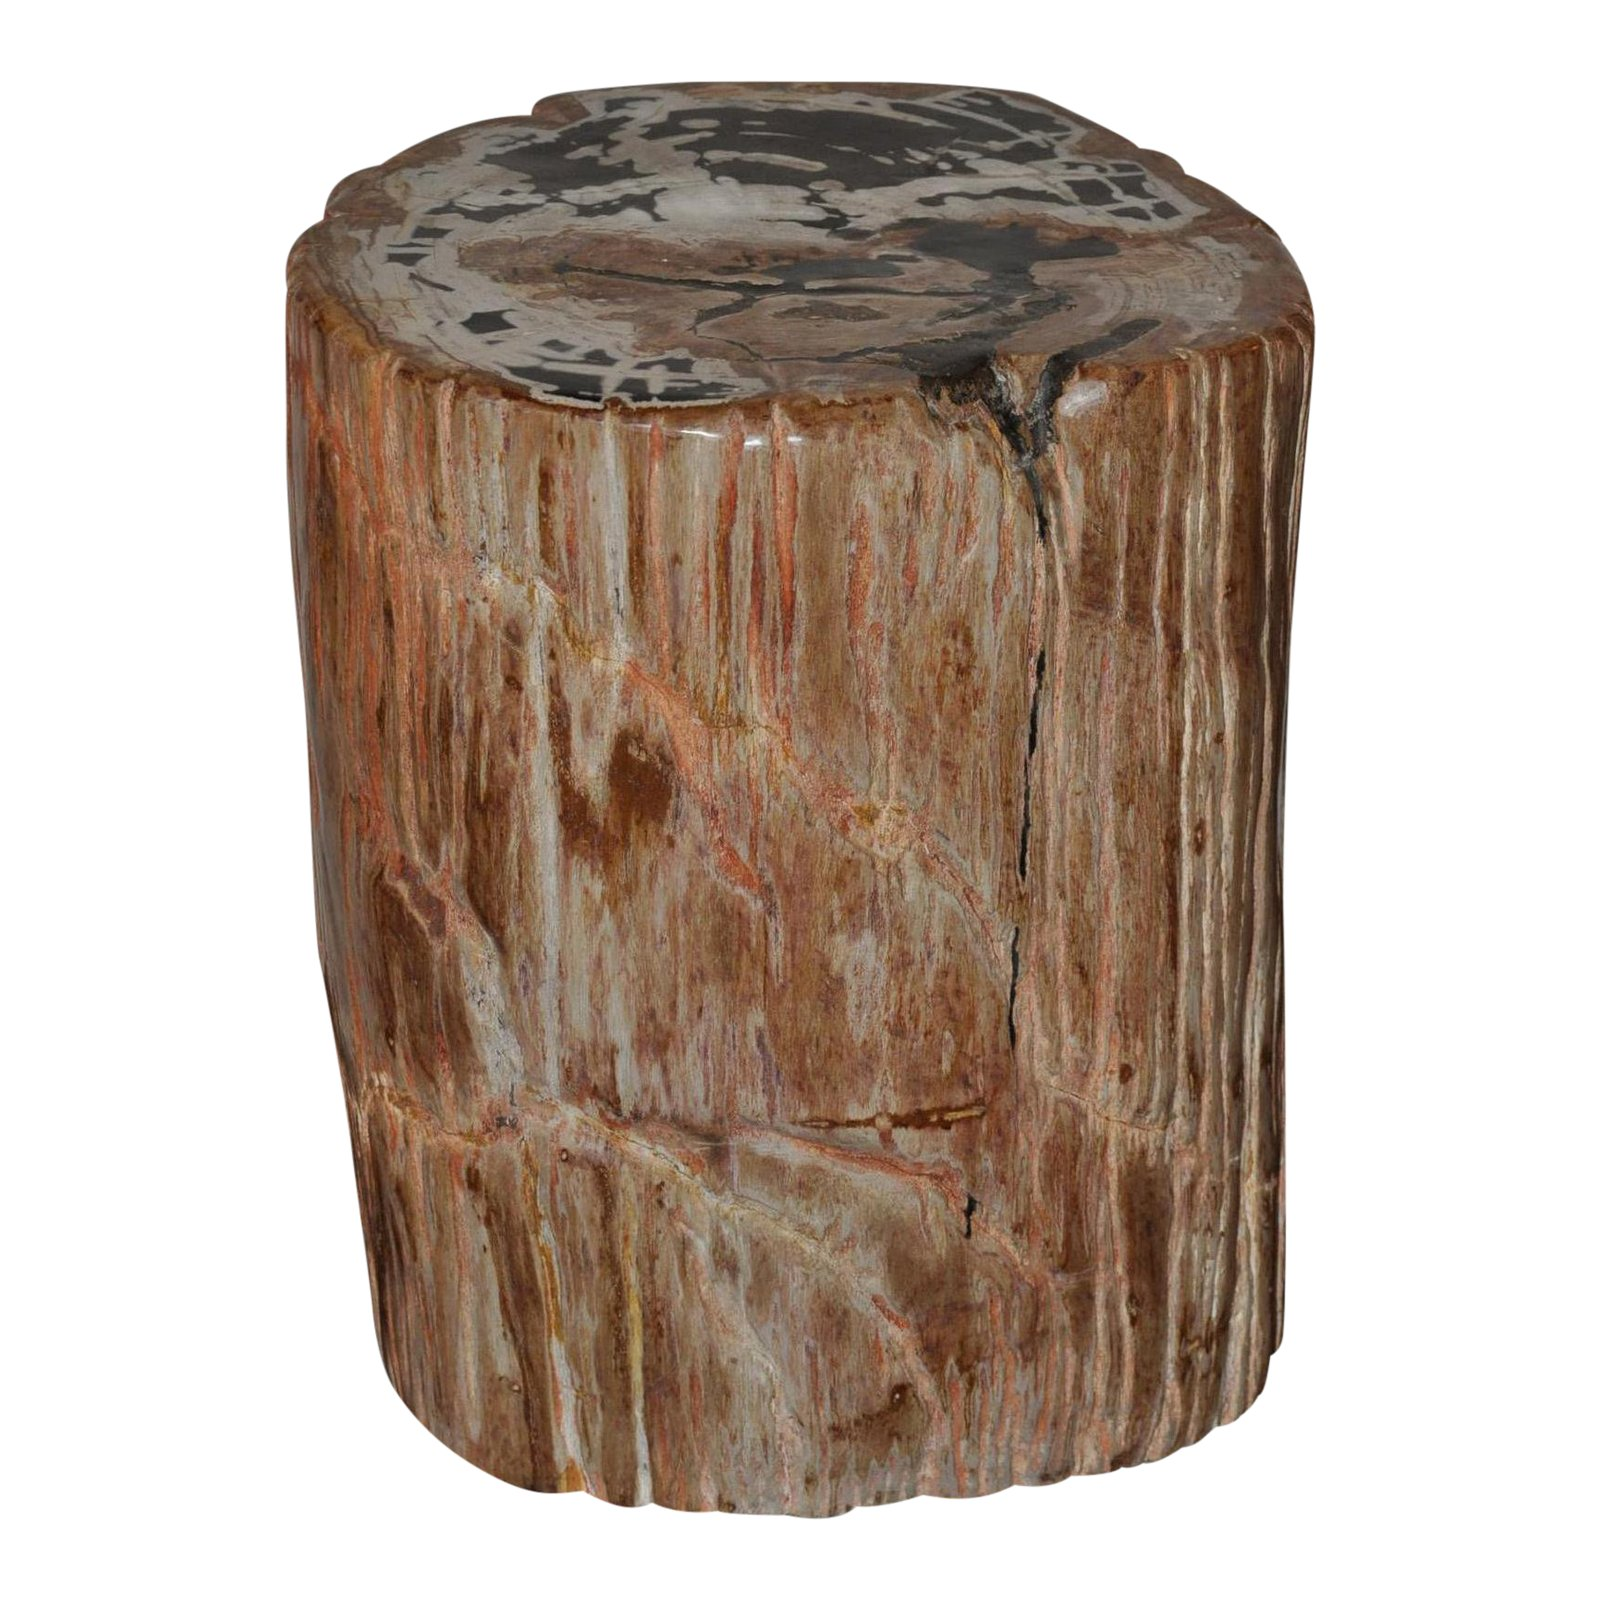 designer quality ancient petrified wood side table chairish accent small round glass dining hampton bay furniture cherry wedge end wrought iron legs walnut bedside white and brown